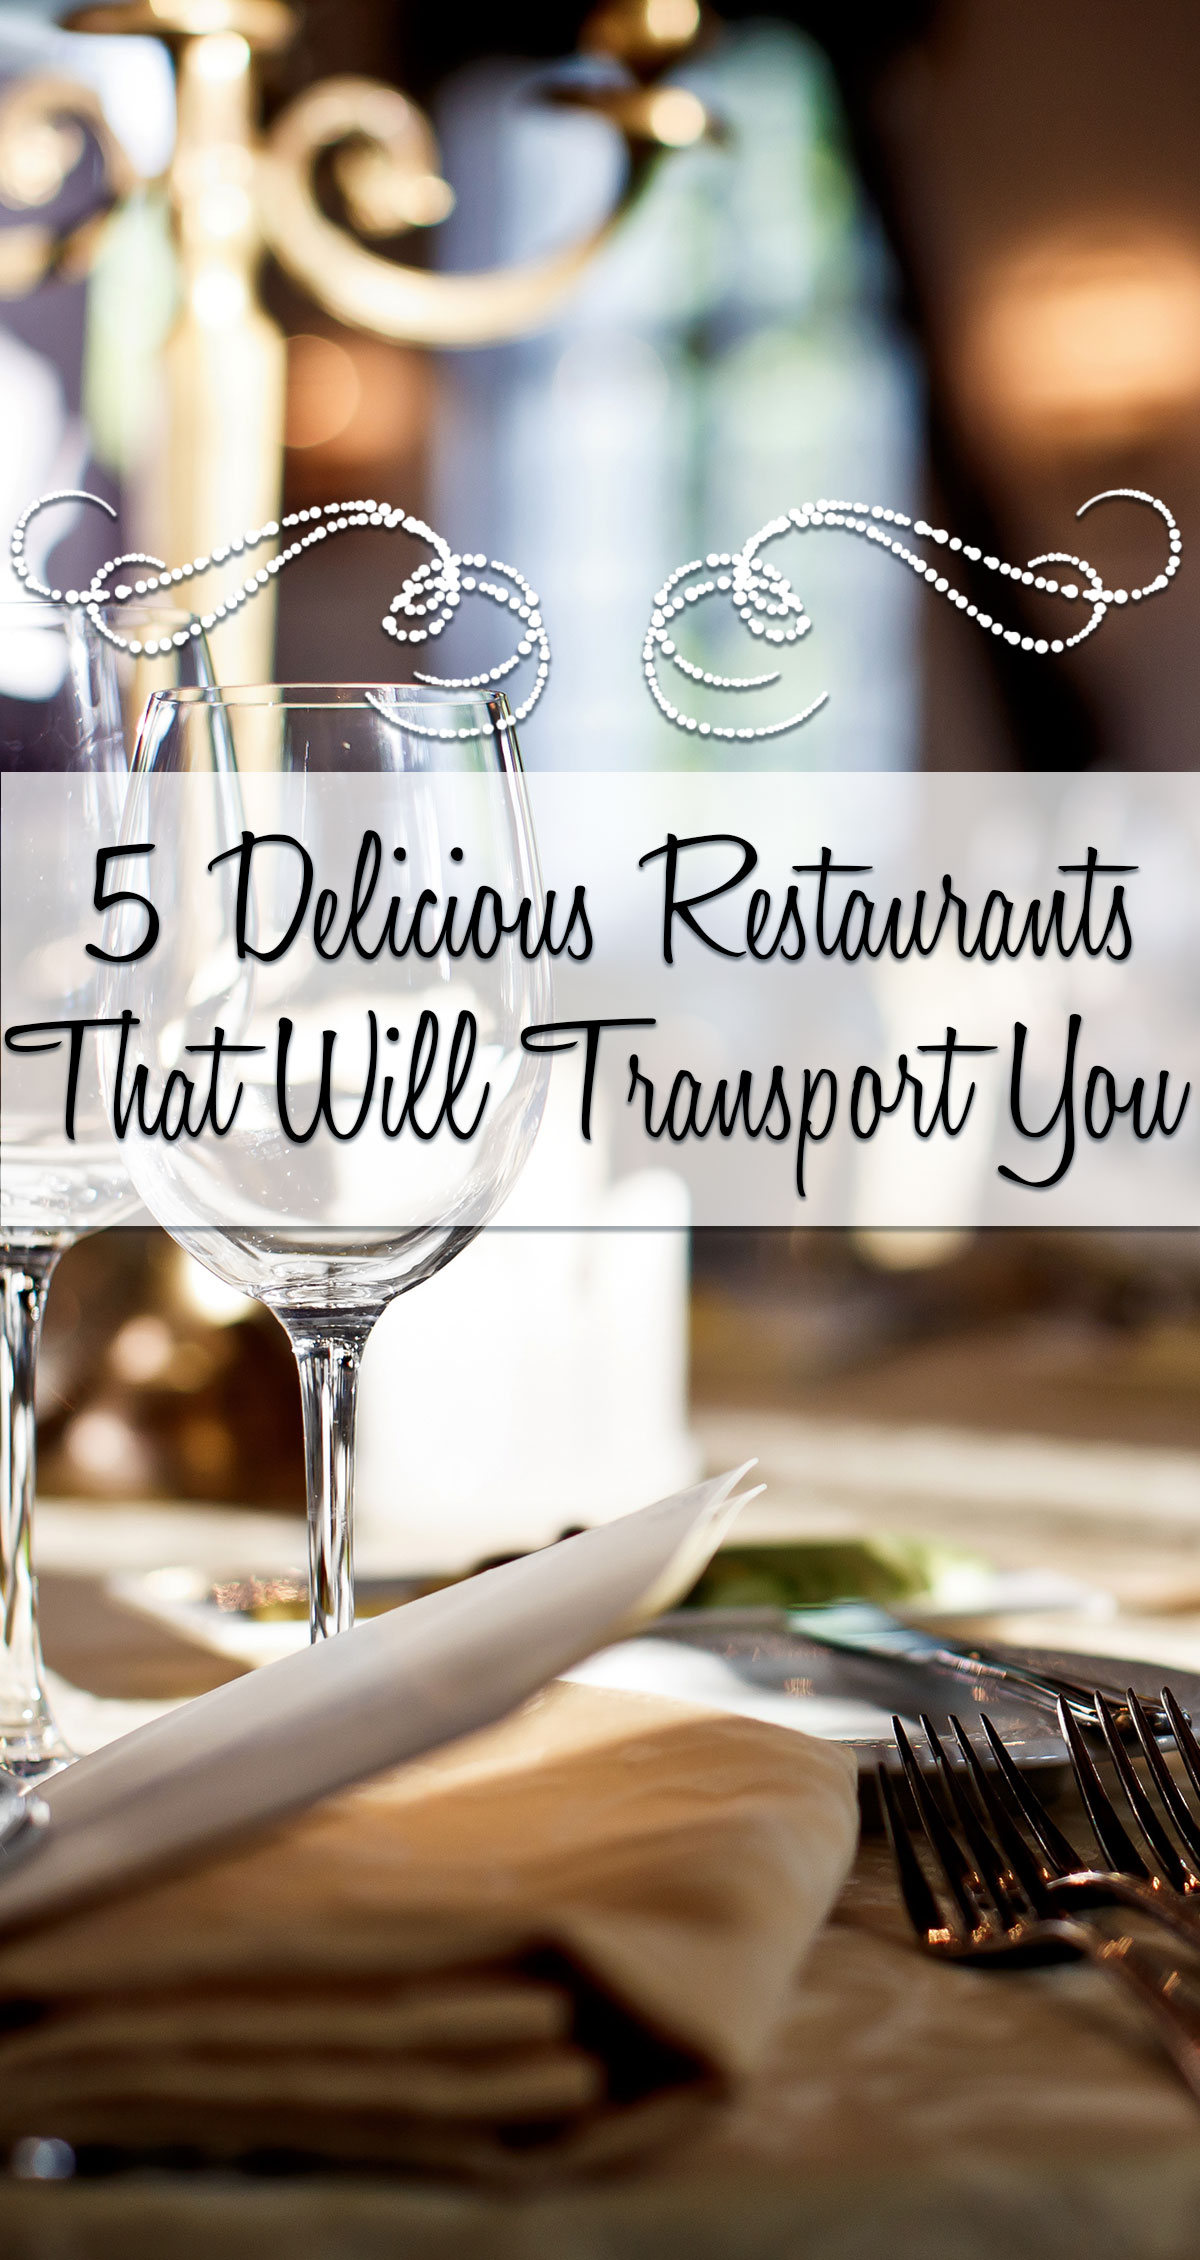 5 Delicious Restaurants That Will Transport You Pin